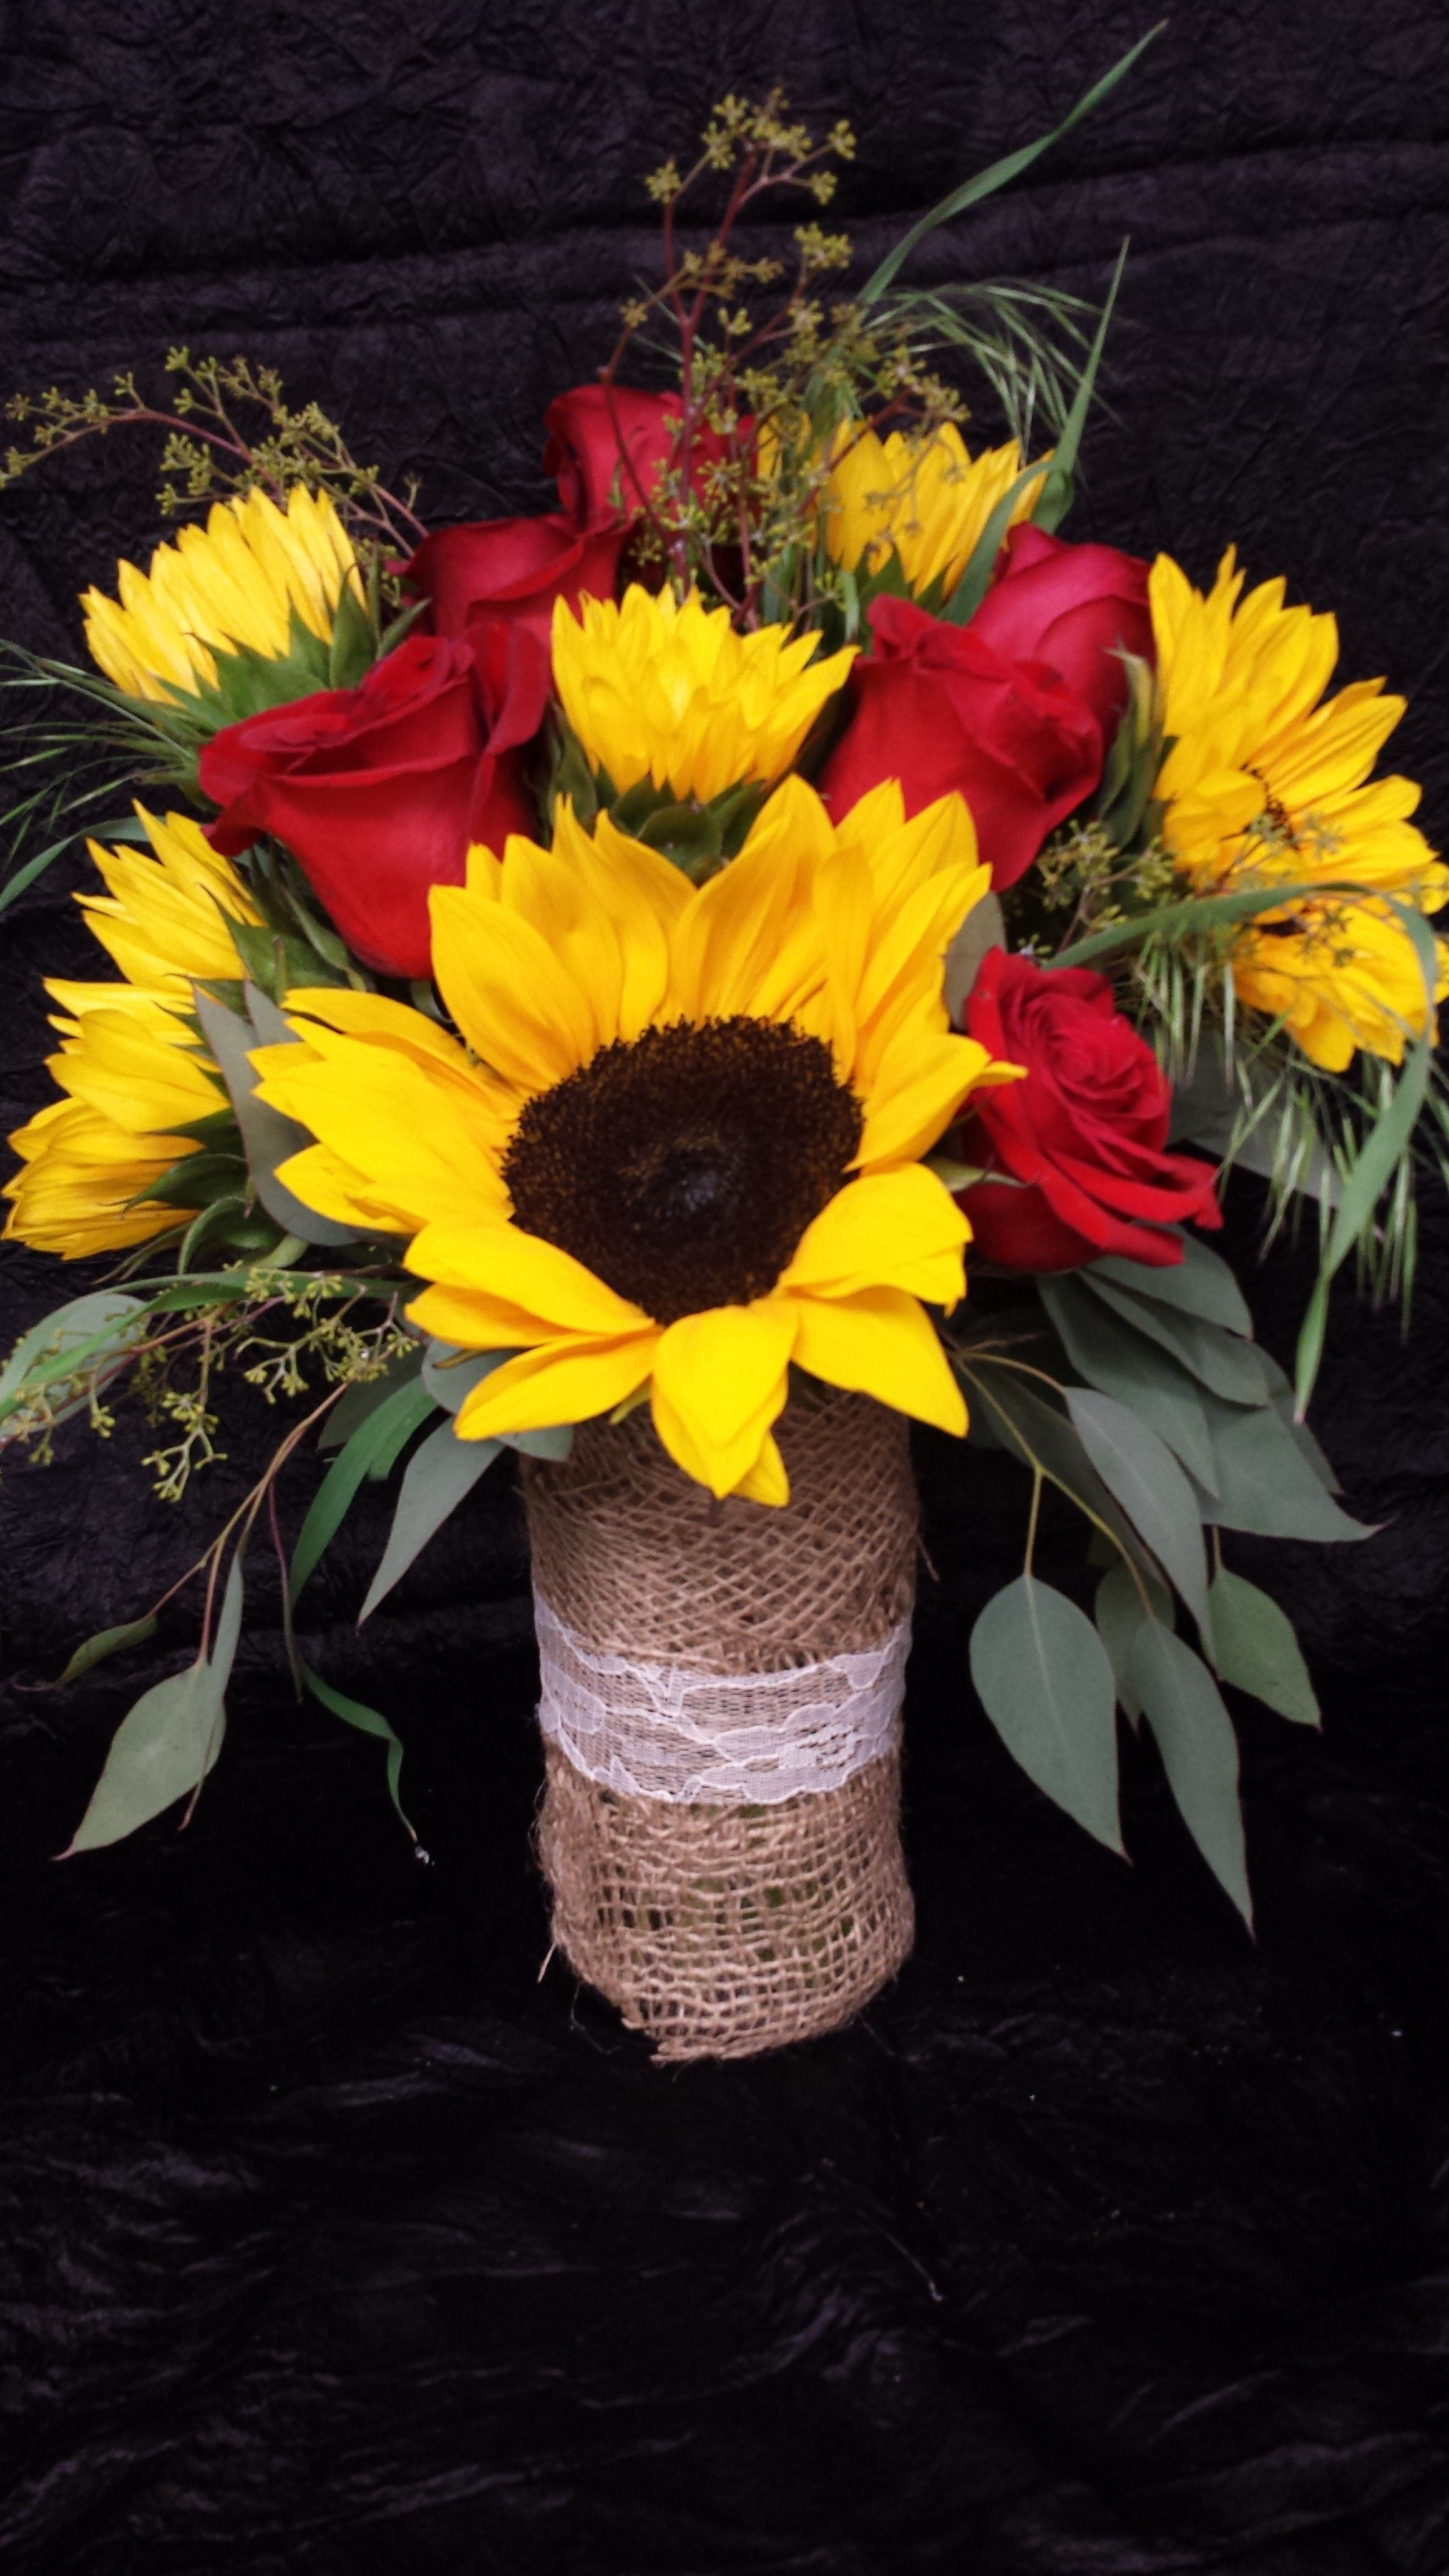 Sunflowers and red rose centerpiece with burlap lace